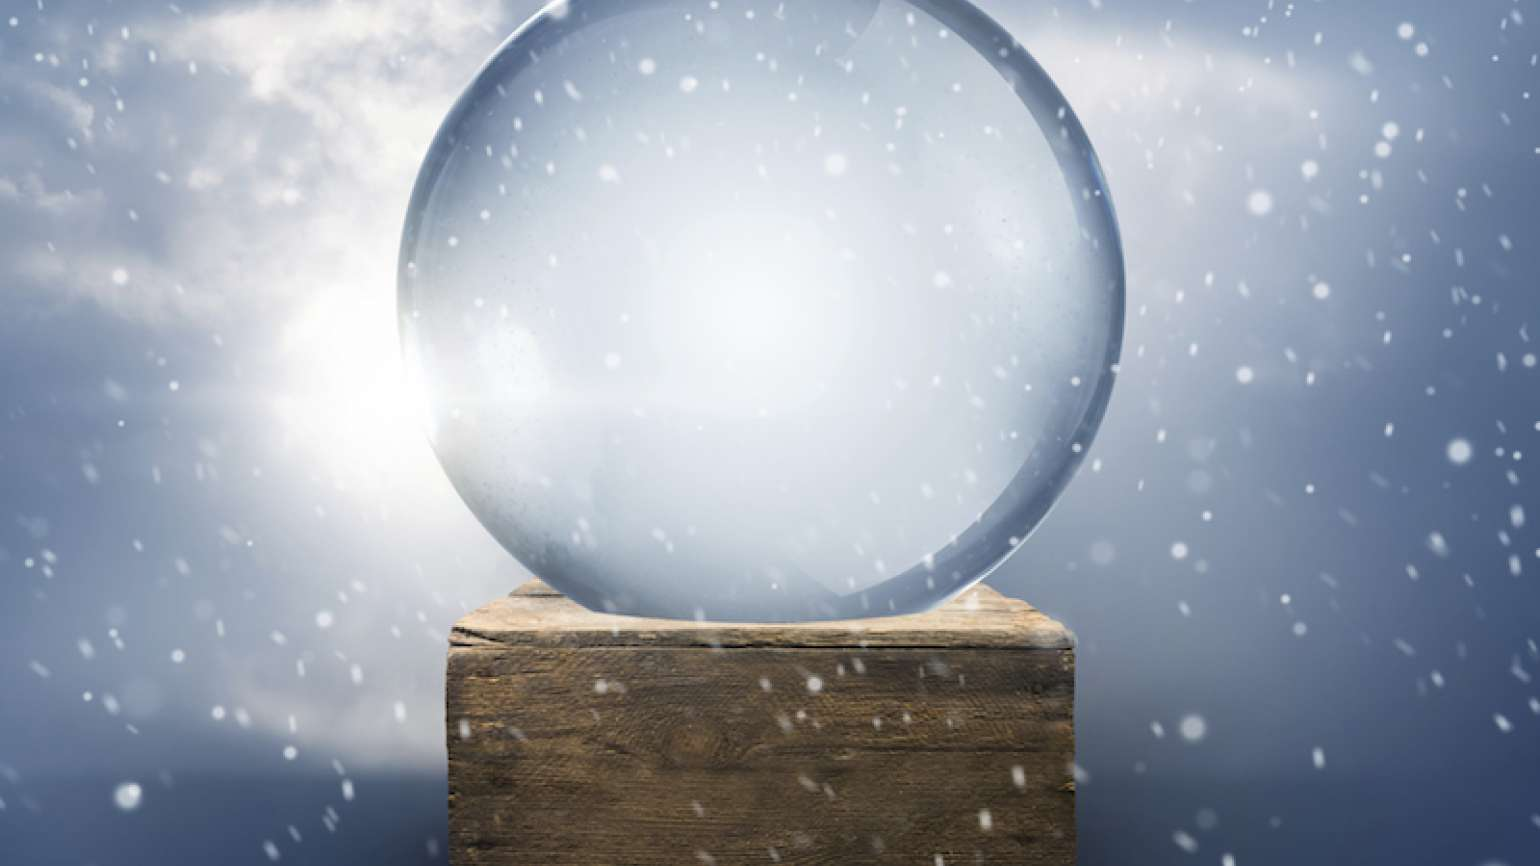 A fragile snow globe. Photo by Solar Seven, Thinkstock.